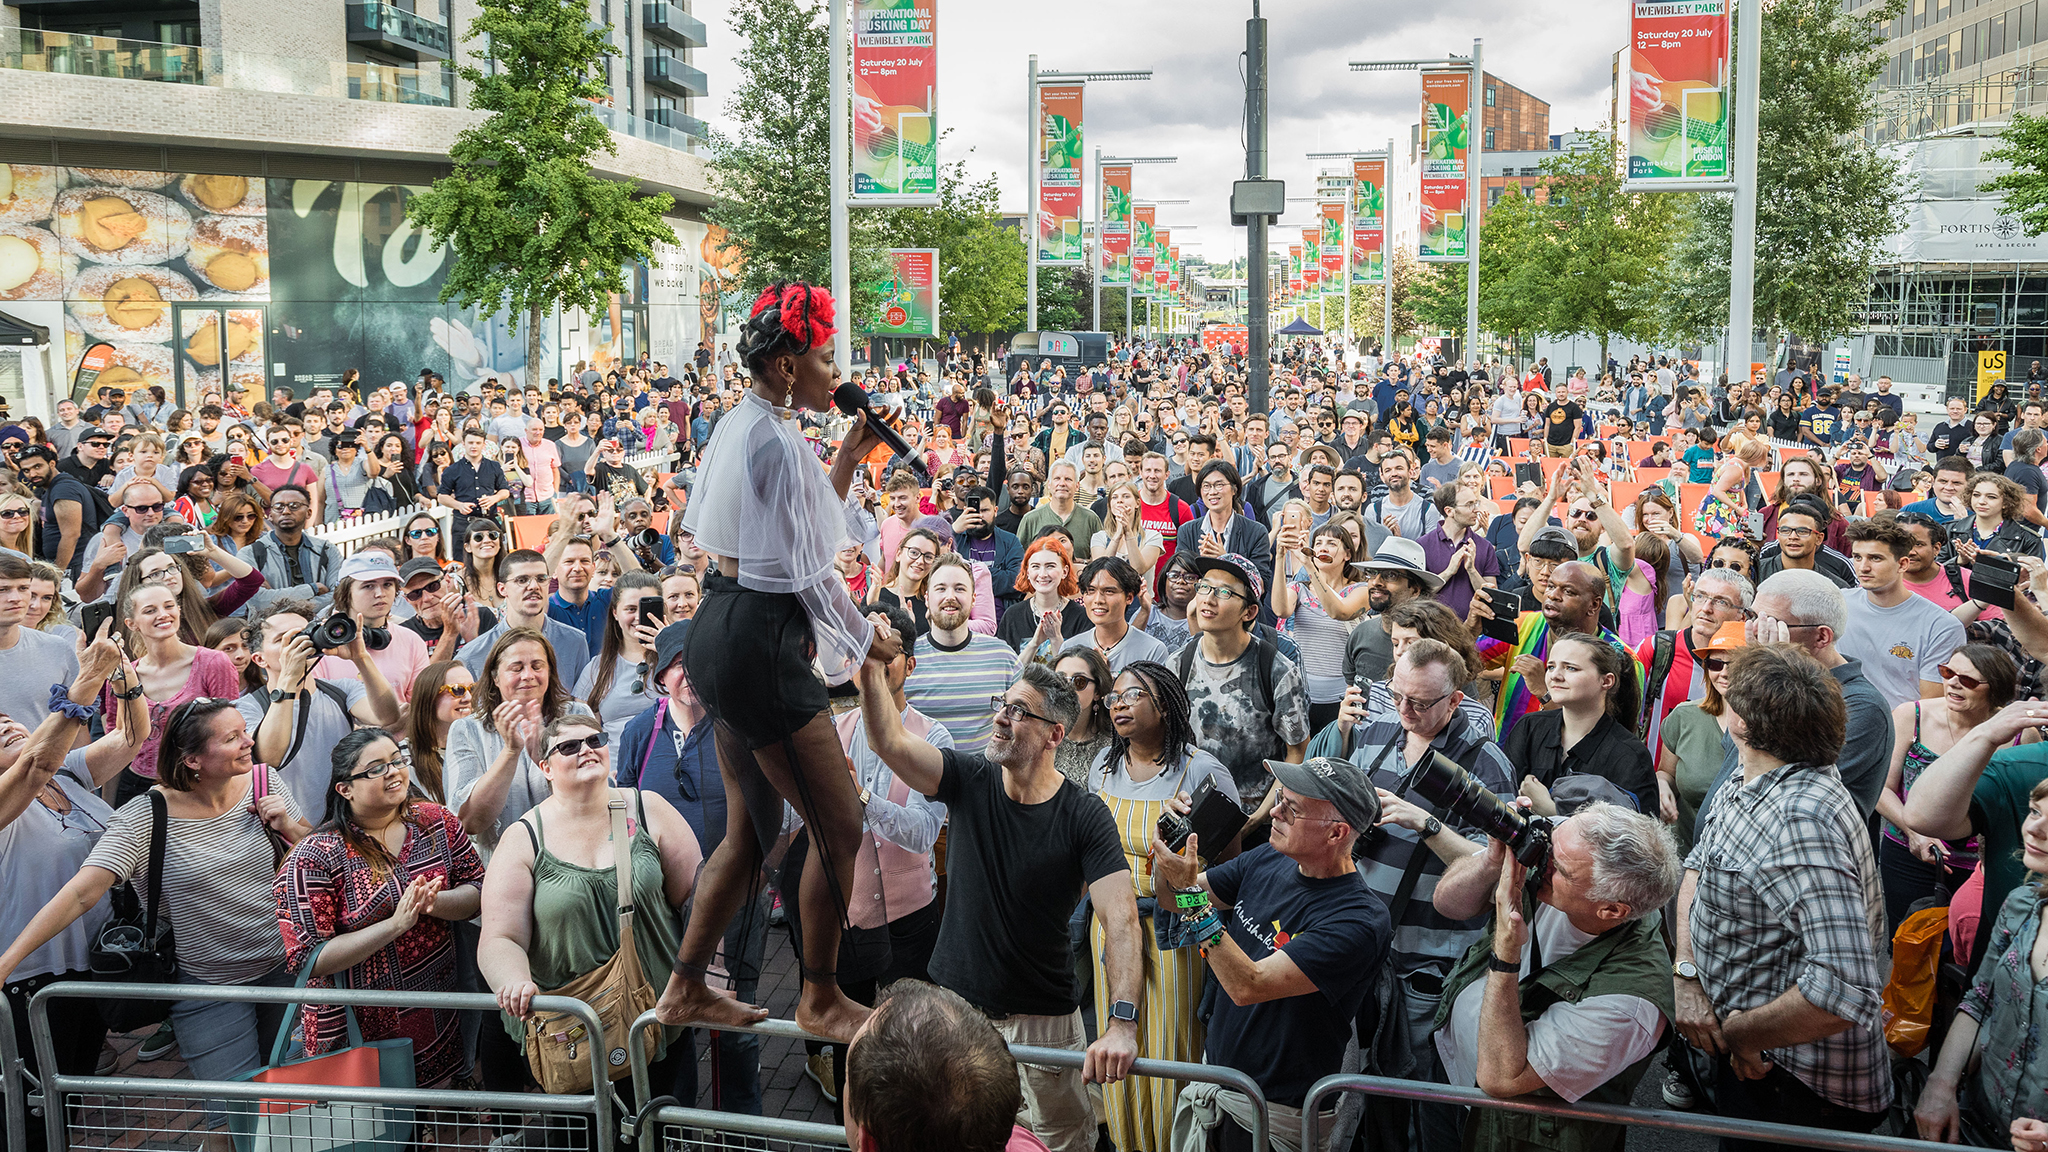 Wembley Park Cultural Placemaking Strategy Delivery